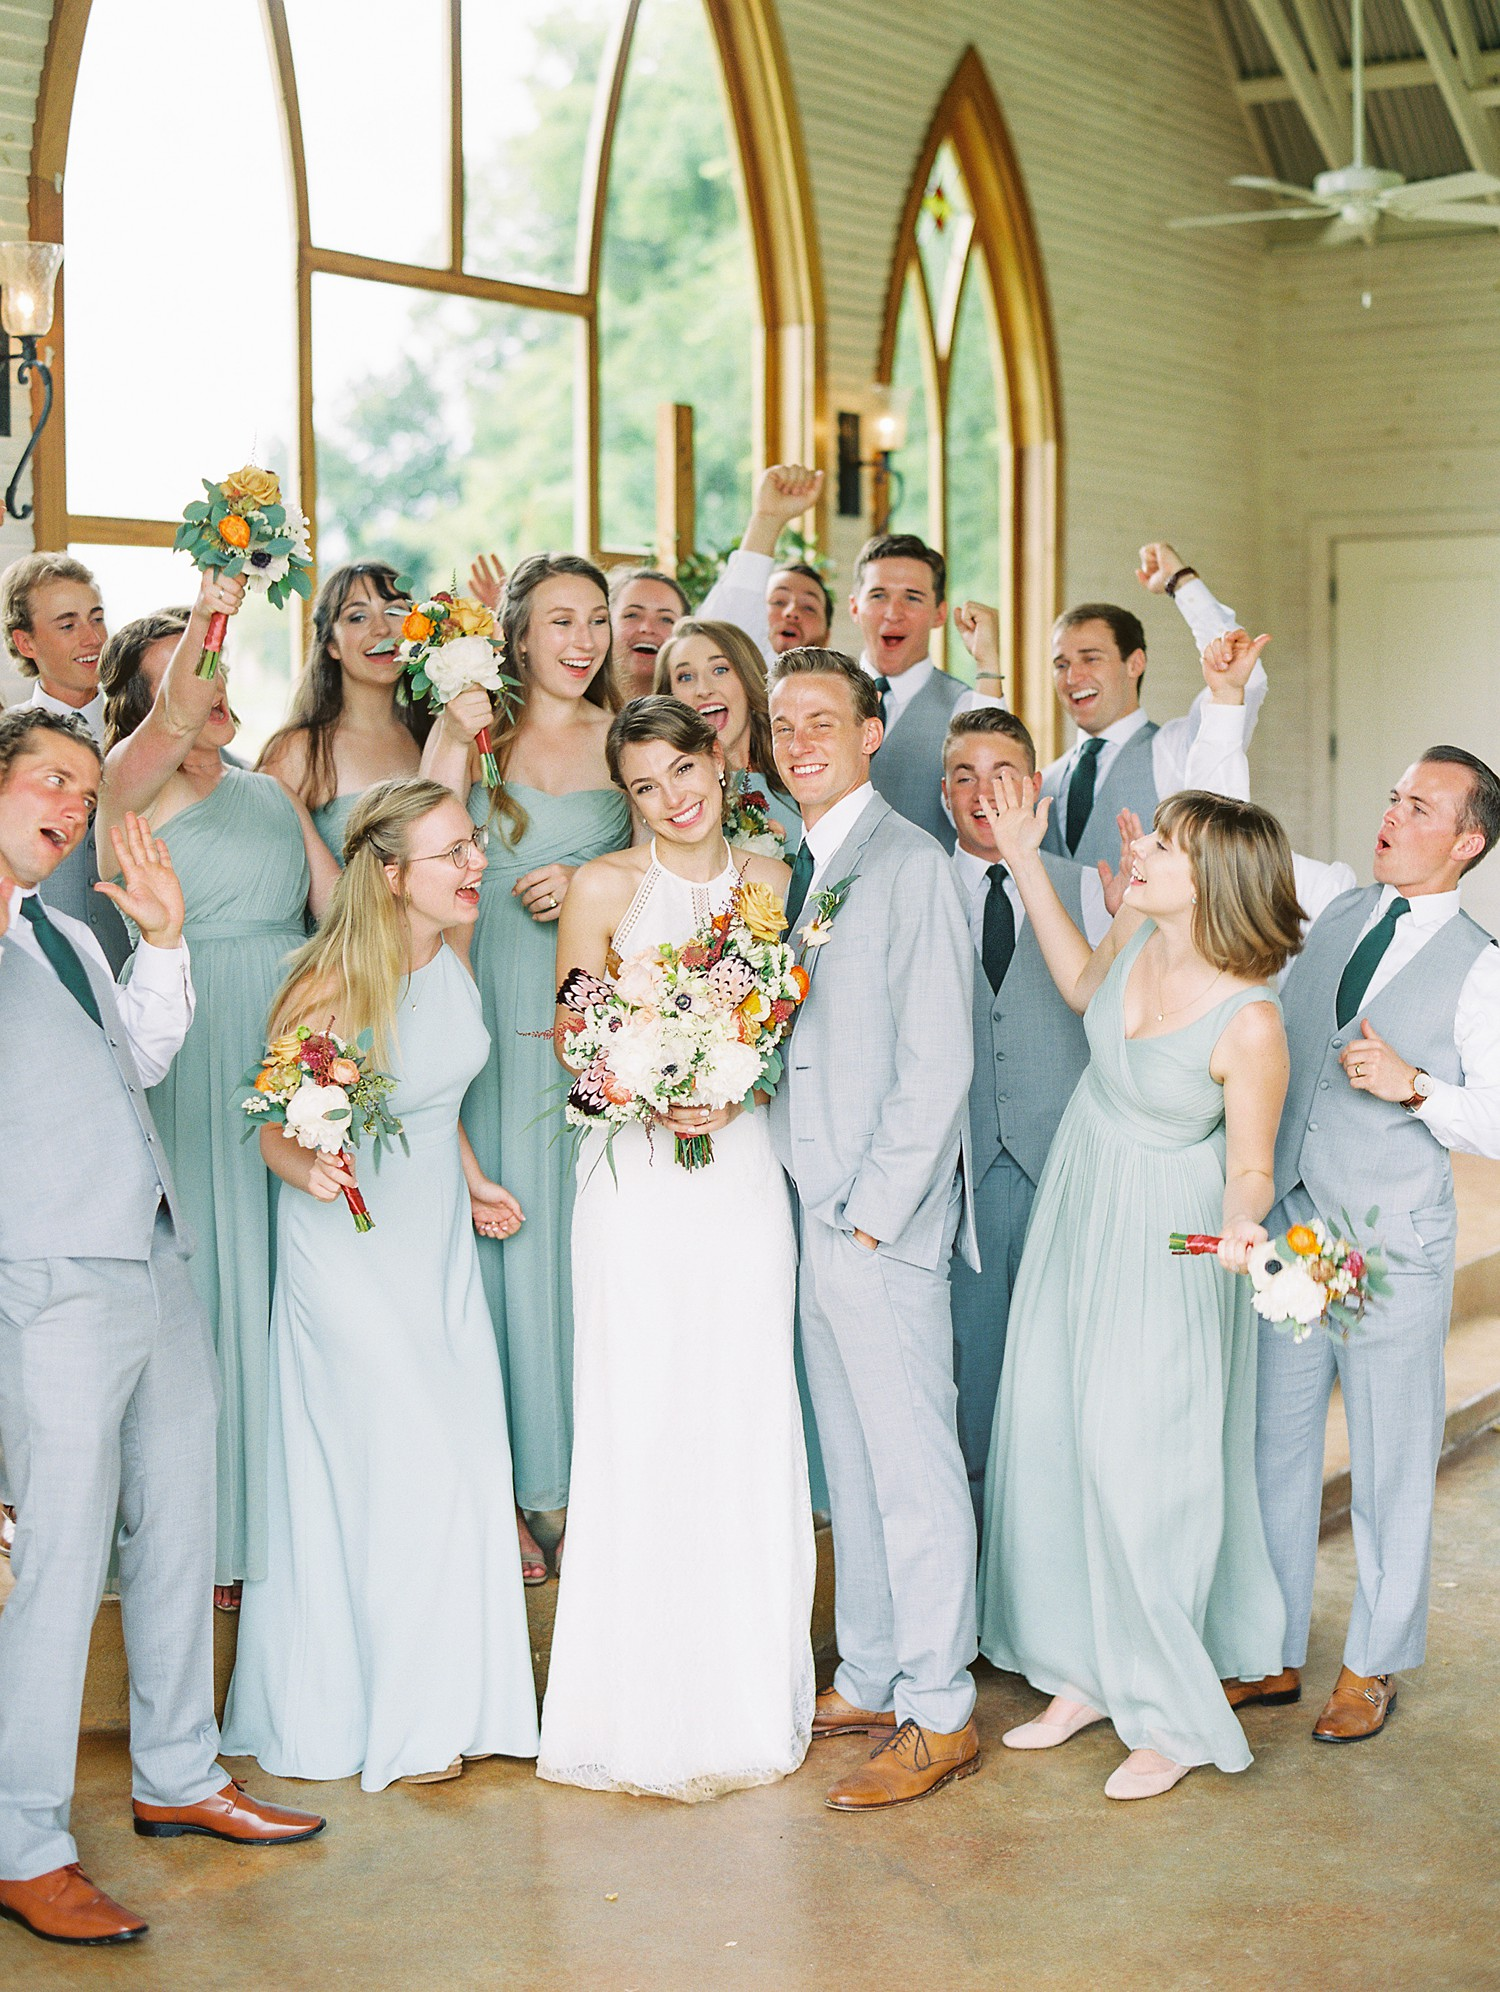 Wedding Party | Intimate Wedding Ceremony | Summer Wedding Inspiration | Fort Worth Wedding Photographer | The Brooks at Weatherford